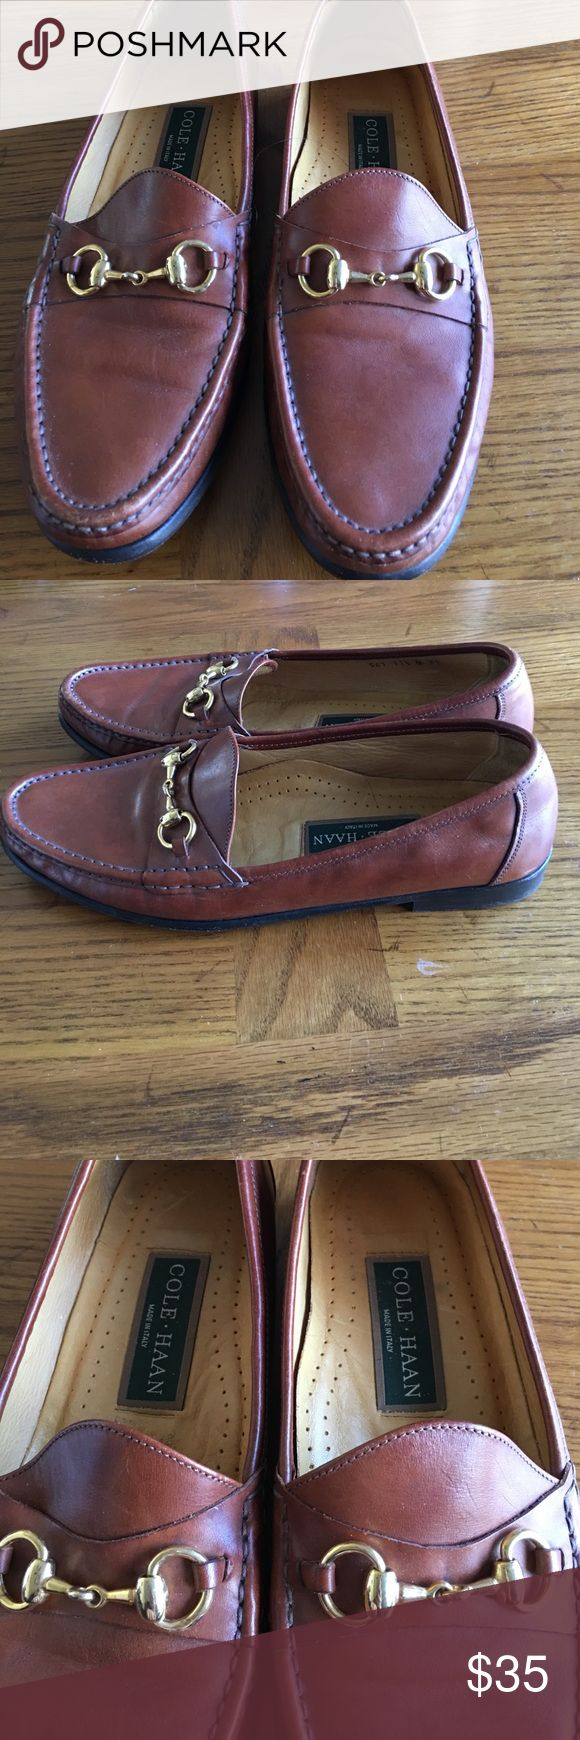 Ladies Cole Haan shoes Ladies Cole Haan shoes in 11.5N. Too narrow for me. In great shape. Cole Haan Shoes Flats & Loafers